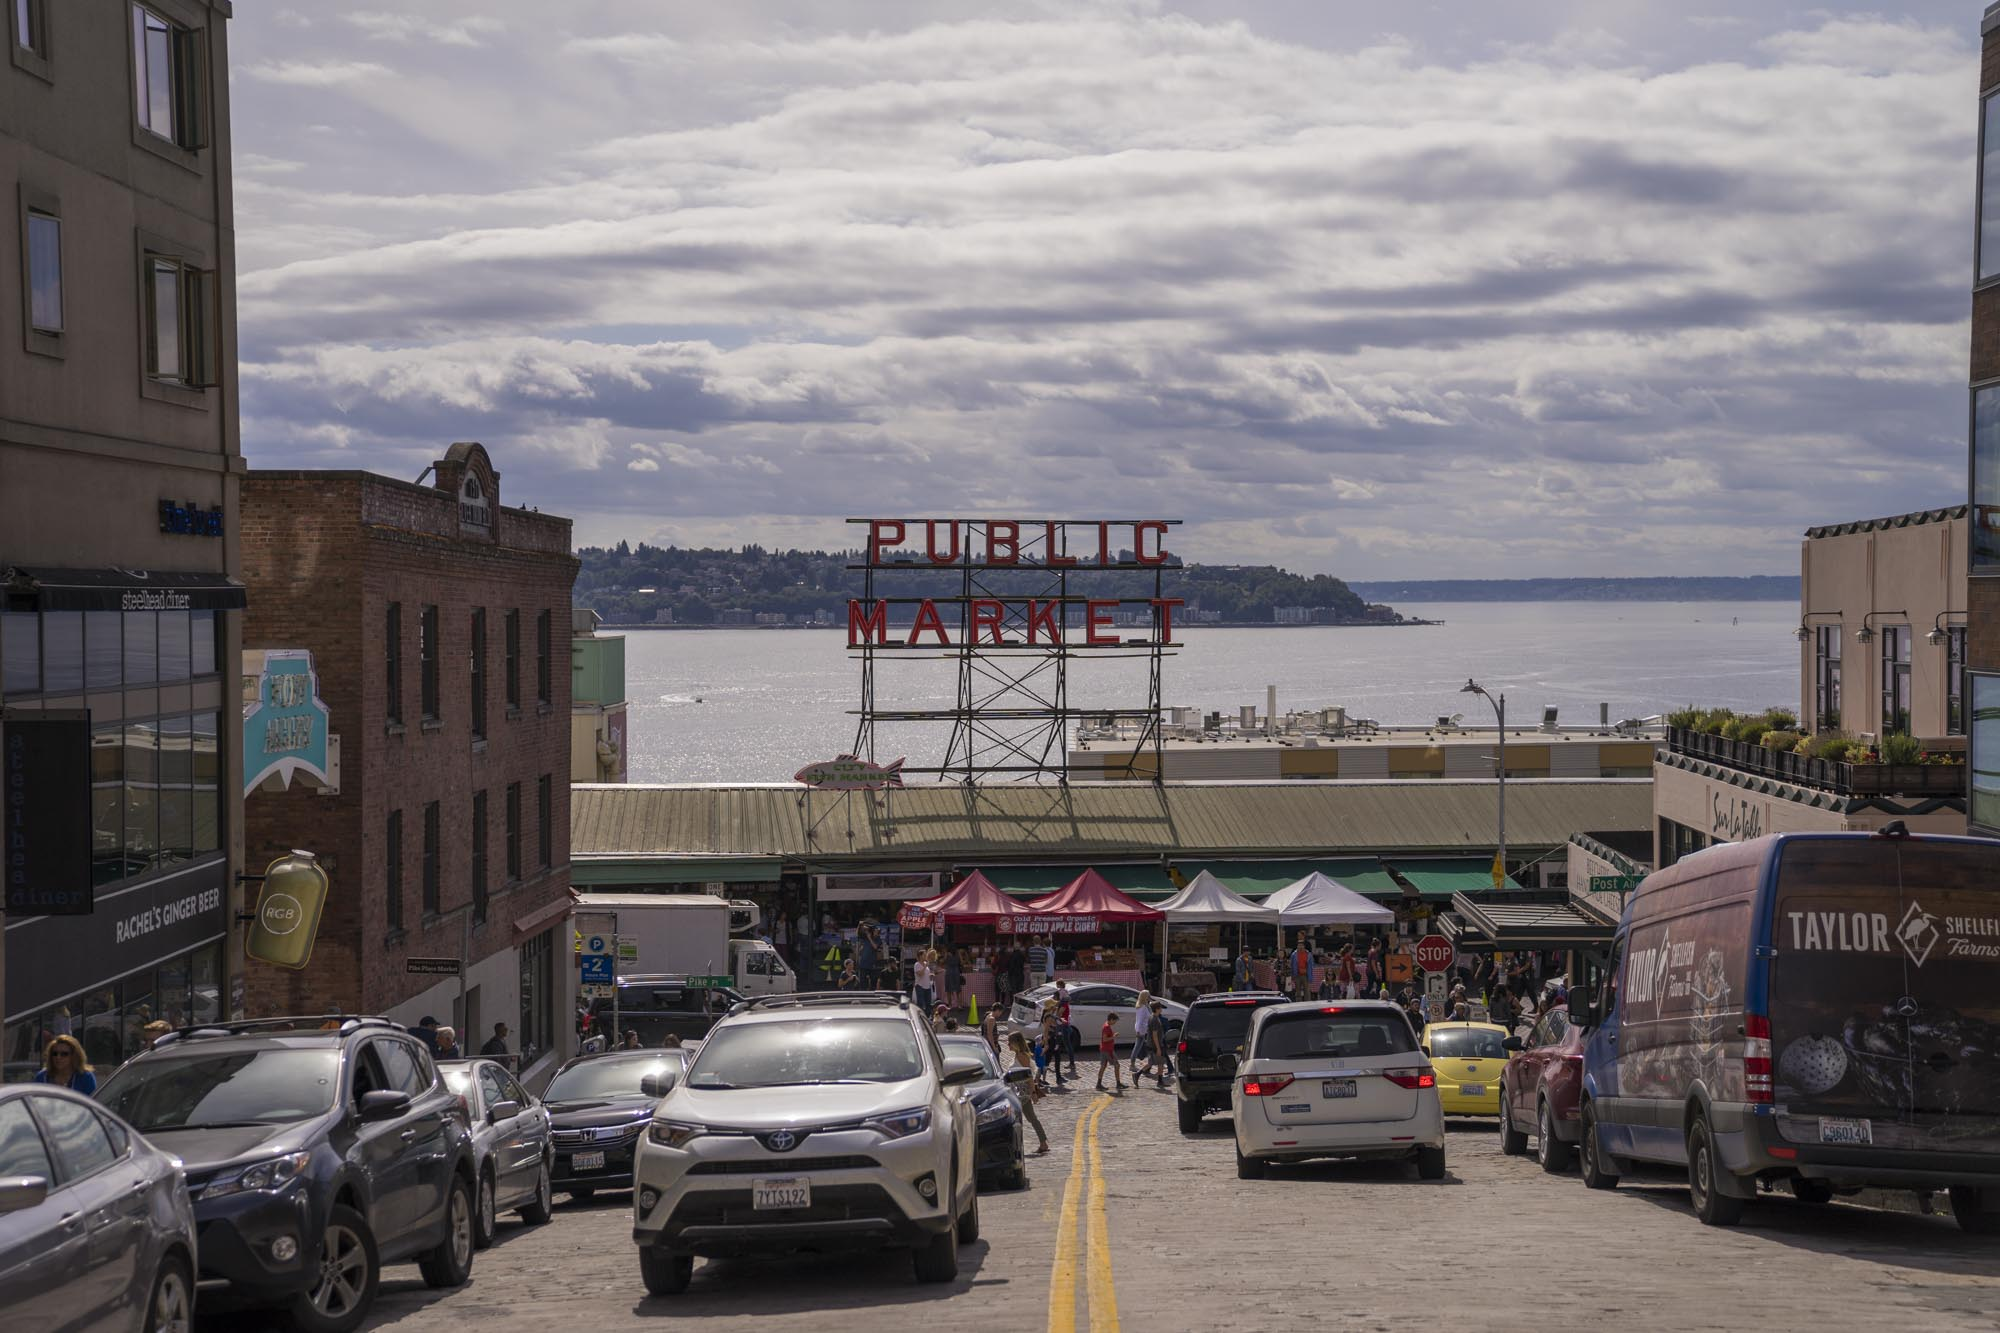 Street view of Pike's Place in Seattle.